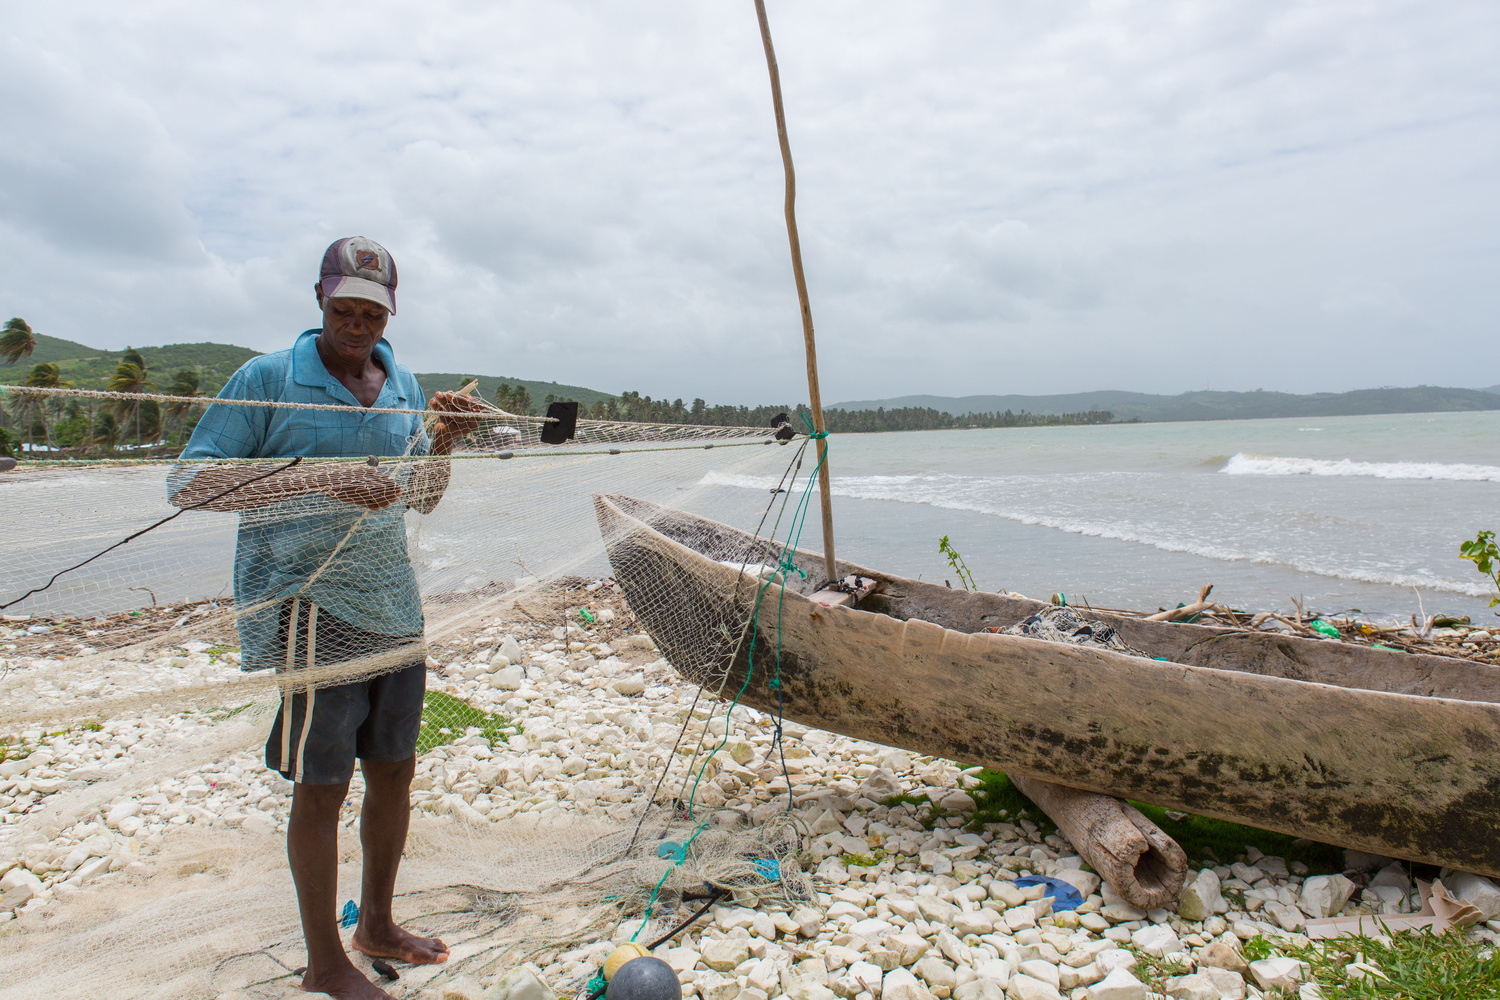 Repairing the fishing lines by Lee Cohen